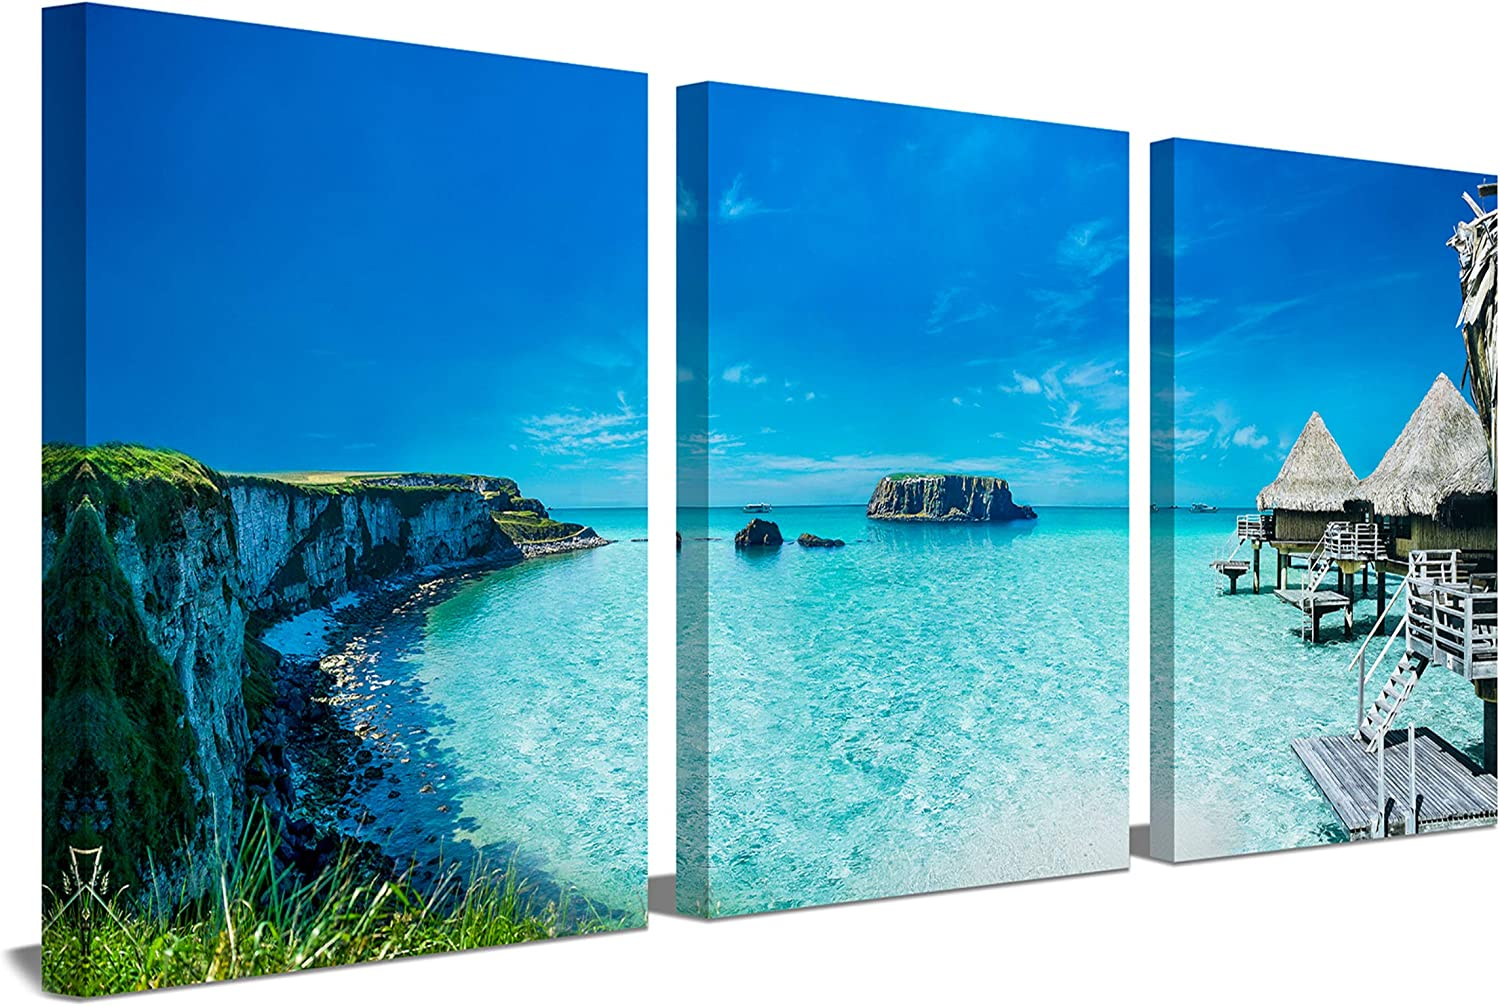 Amazon Com Blue Sea Canvas Wall Art For Home Wall Clearance Decoration 12x16inchx3panels Framed Living Room Polynesia Overwater Bungalow Wall Picture Nipa Hut Beach Cottage Decor Painting Seascape Prints Artwork Posters Prints